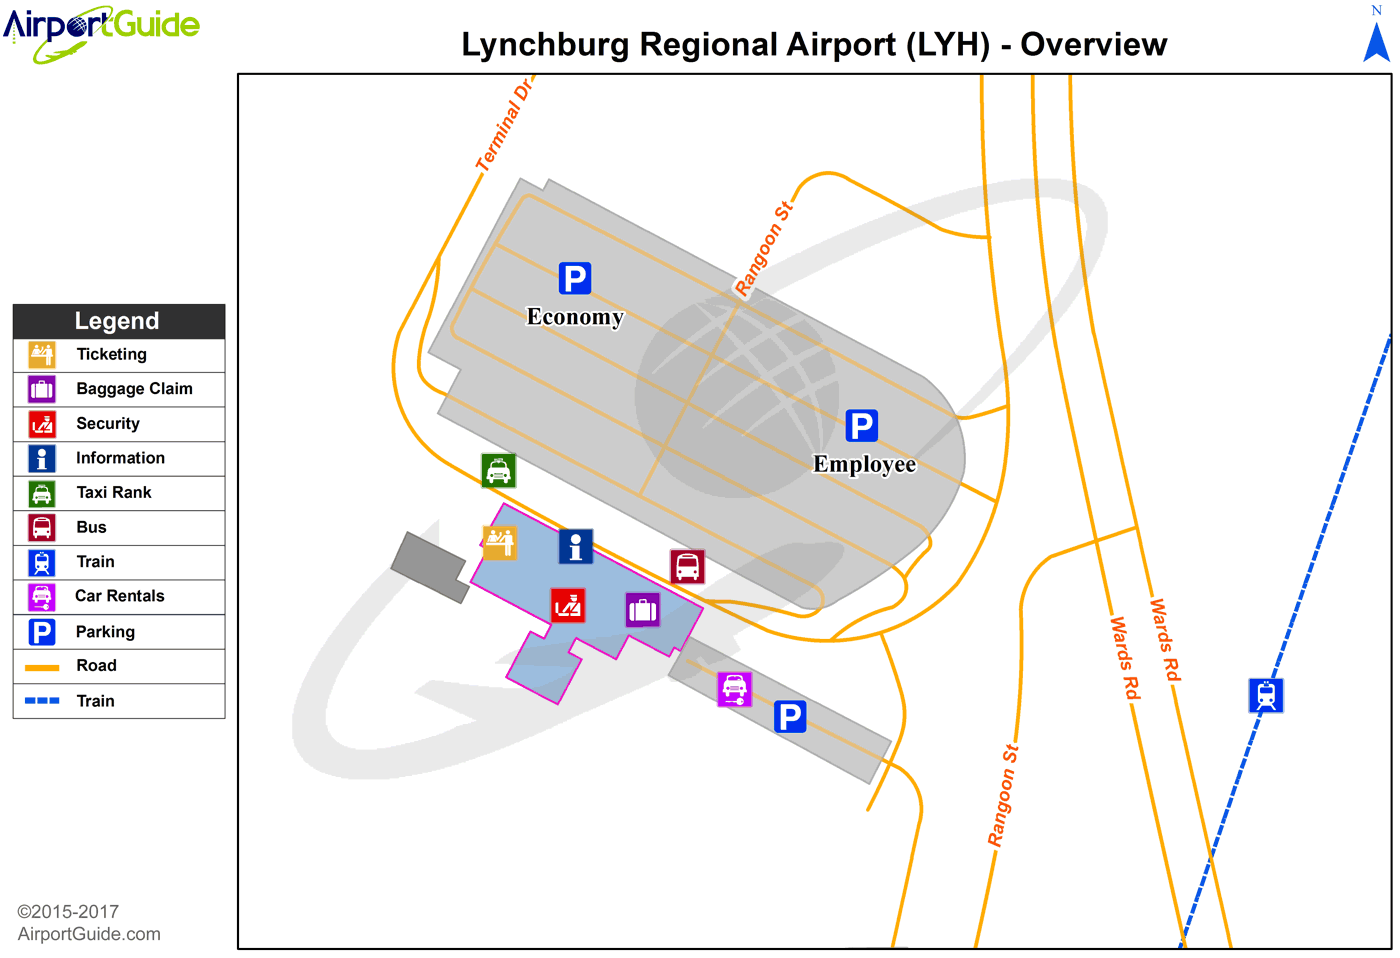 Lynchburg - Lynchburg Regional/Preston Glenn Field (LYH) Airport Terminal Map - Overview